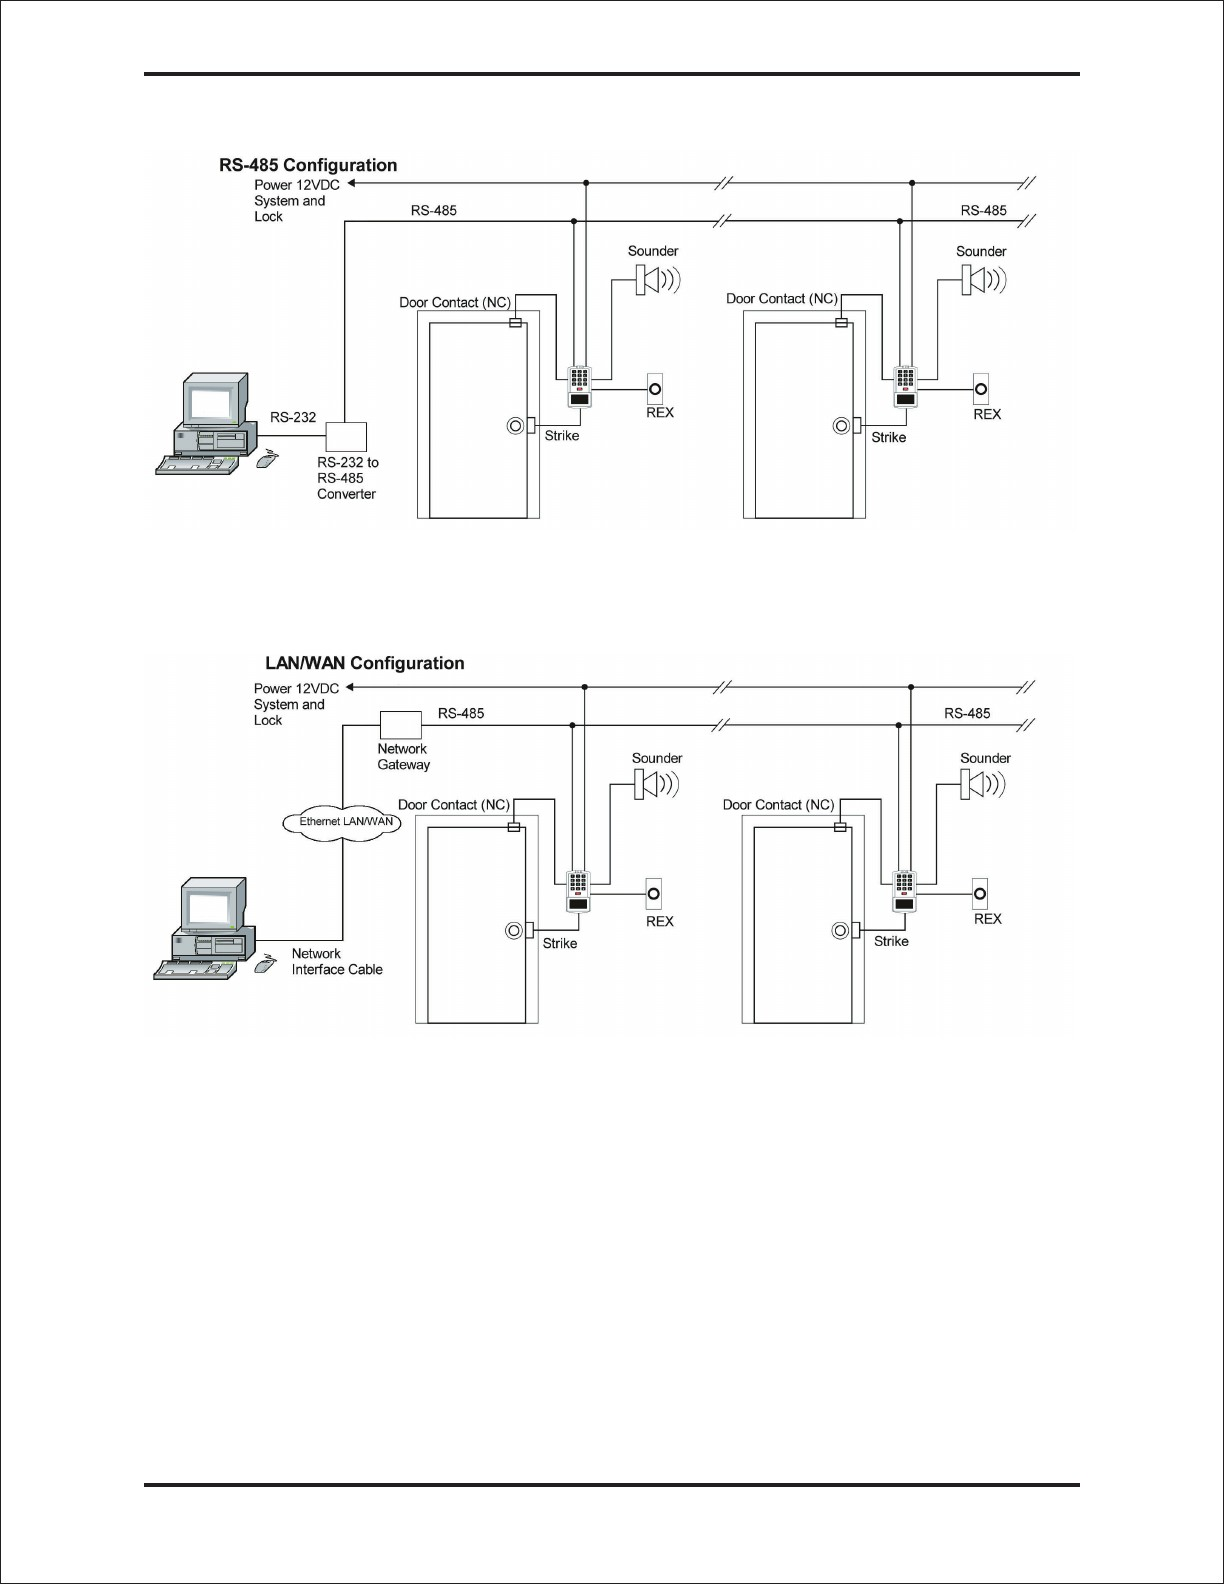 Hid Prox Reader Wiring Diagram Ppp Proxpad Plus User Manual Quickrefp Corel Ventura Of Hid Prox Reader Wiring Diagram